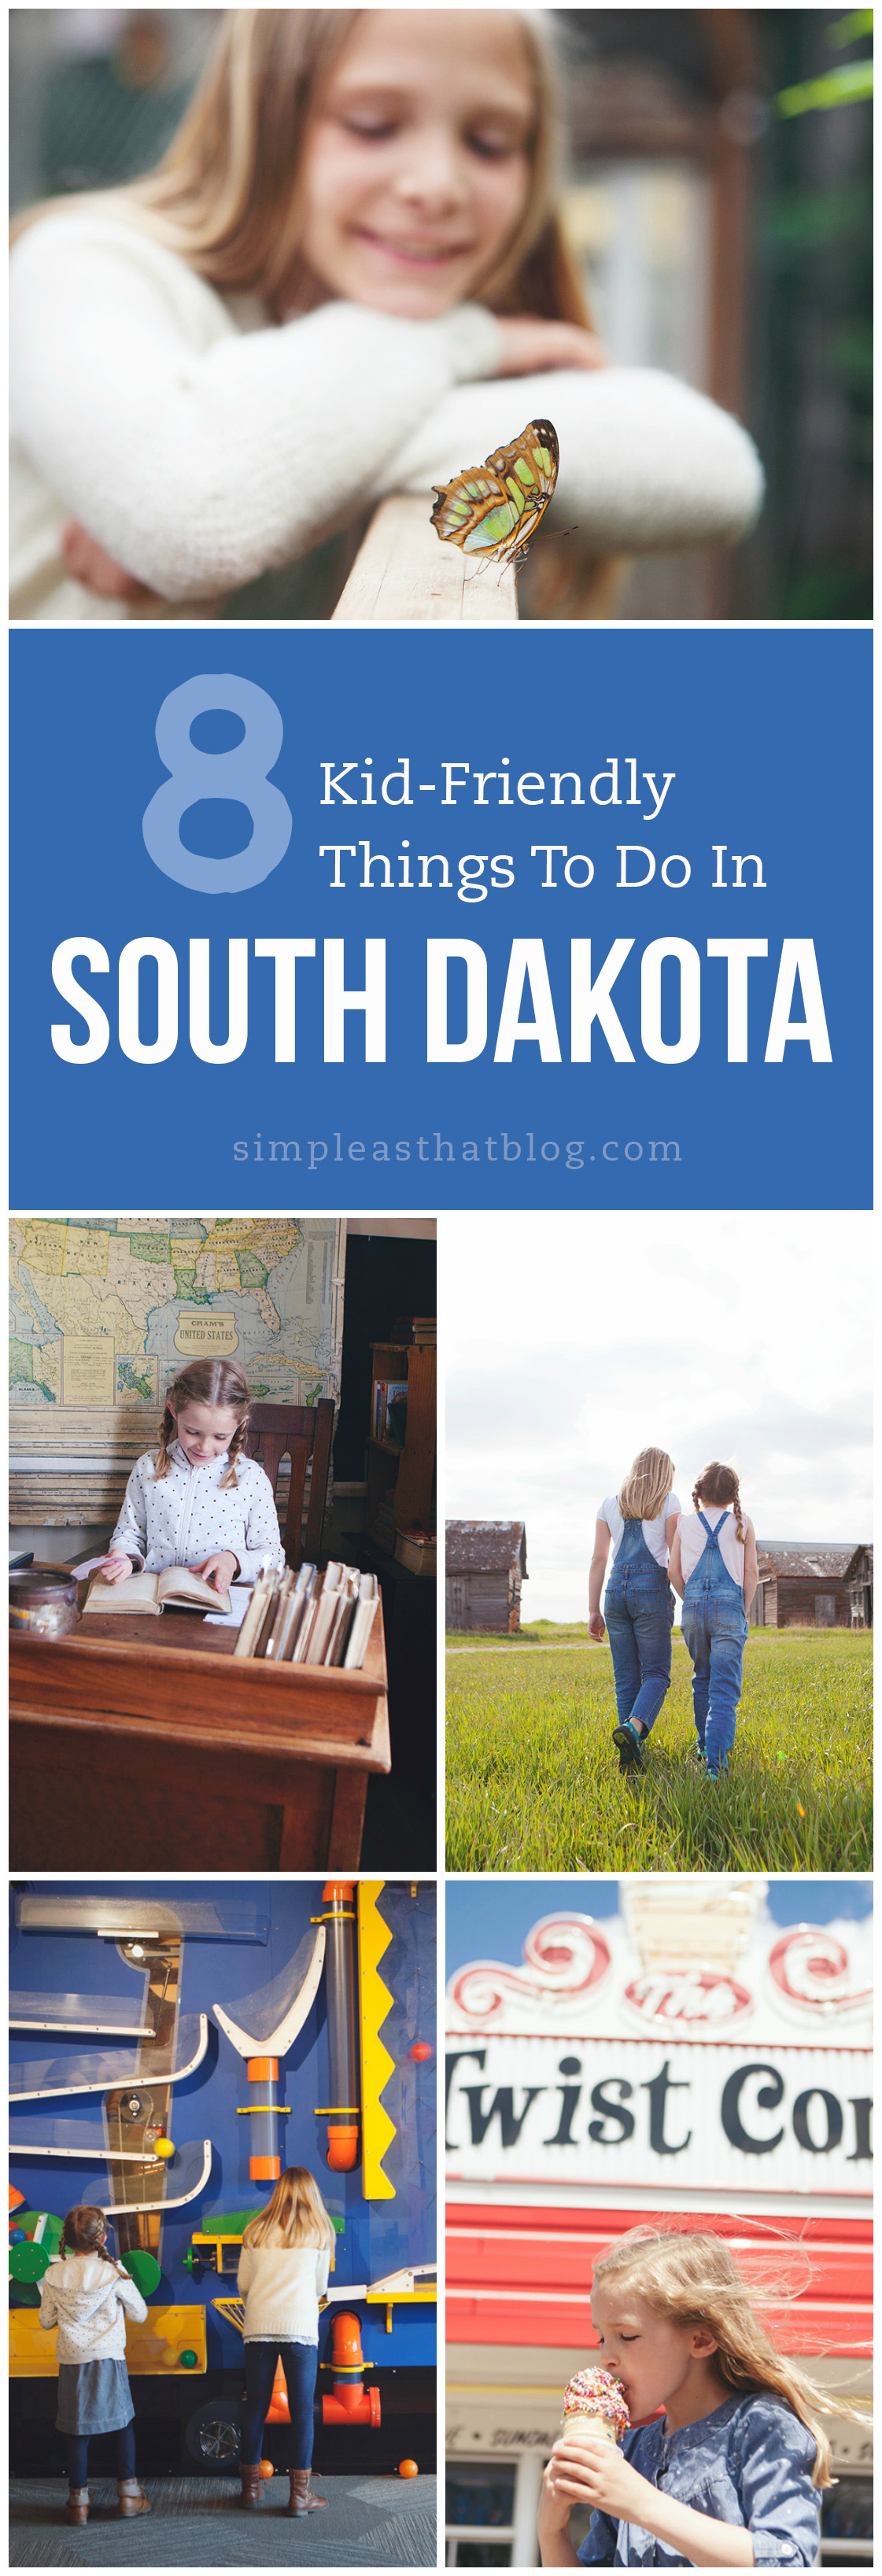 Local travel is fun and affordable! If you're in the area, South Dakota has so much to offer. Here are 8 kid-friendly destinations for your South Dakota road trip.